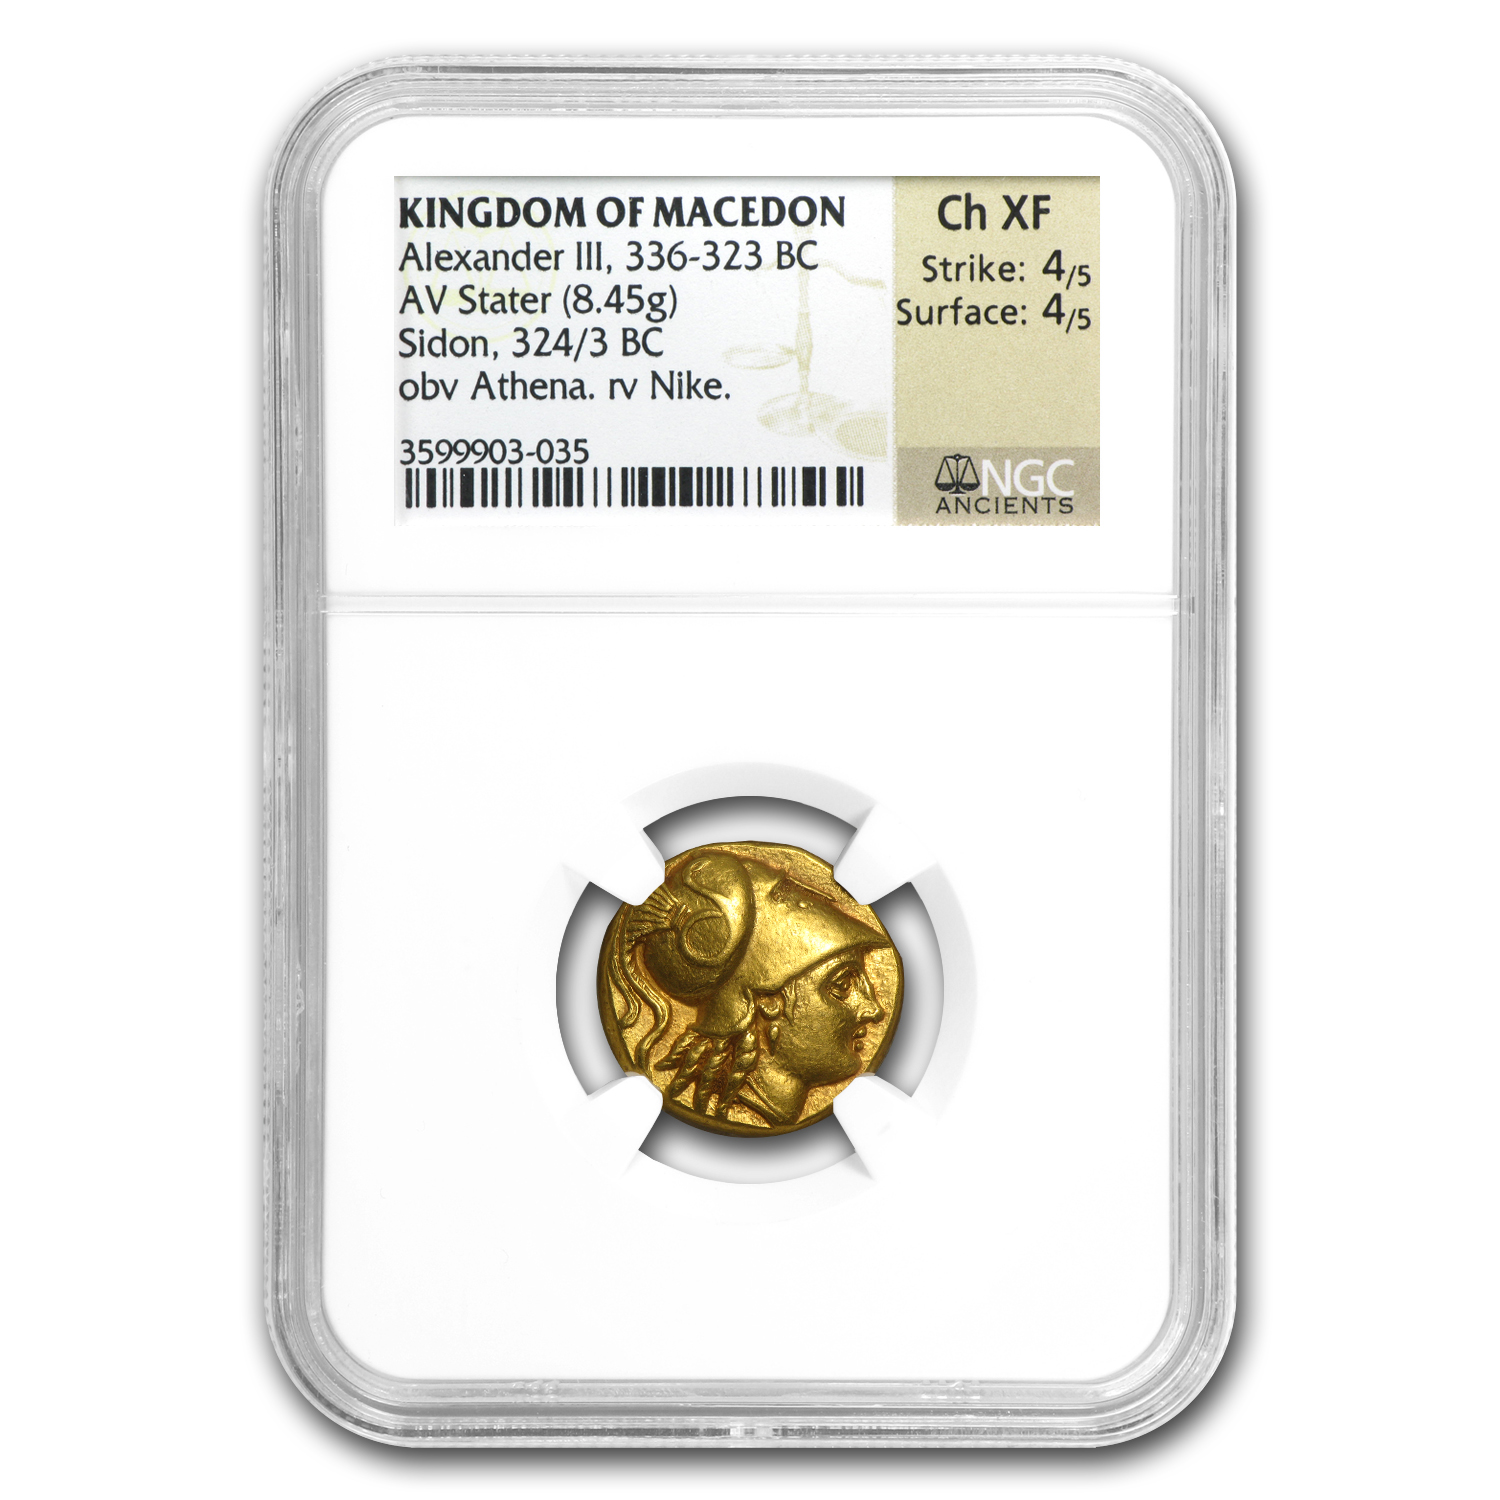 Macedonia Gold Stater of Alexander III Ch XF NGC (336-323 BC)